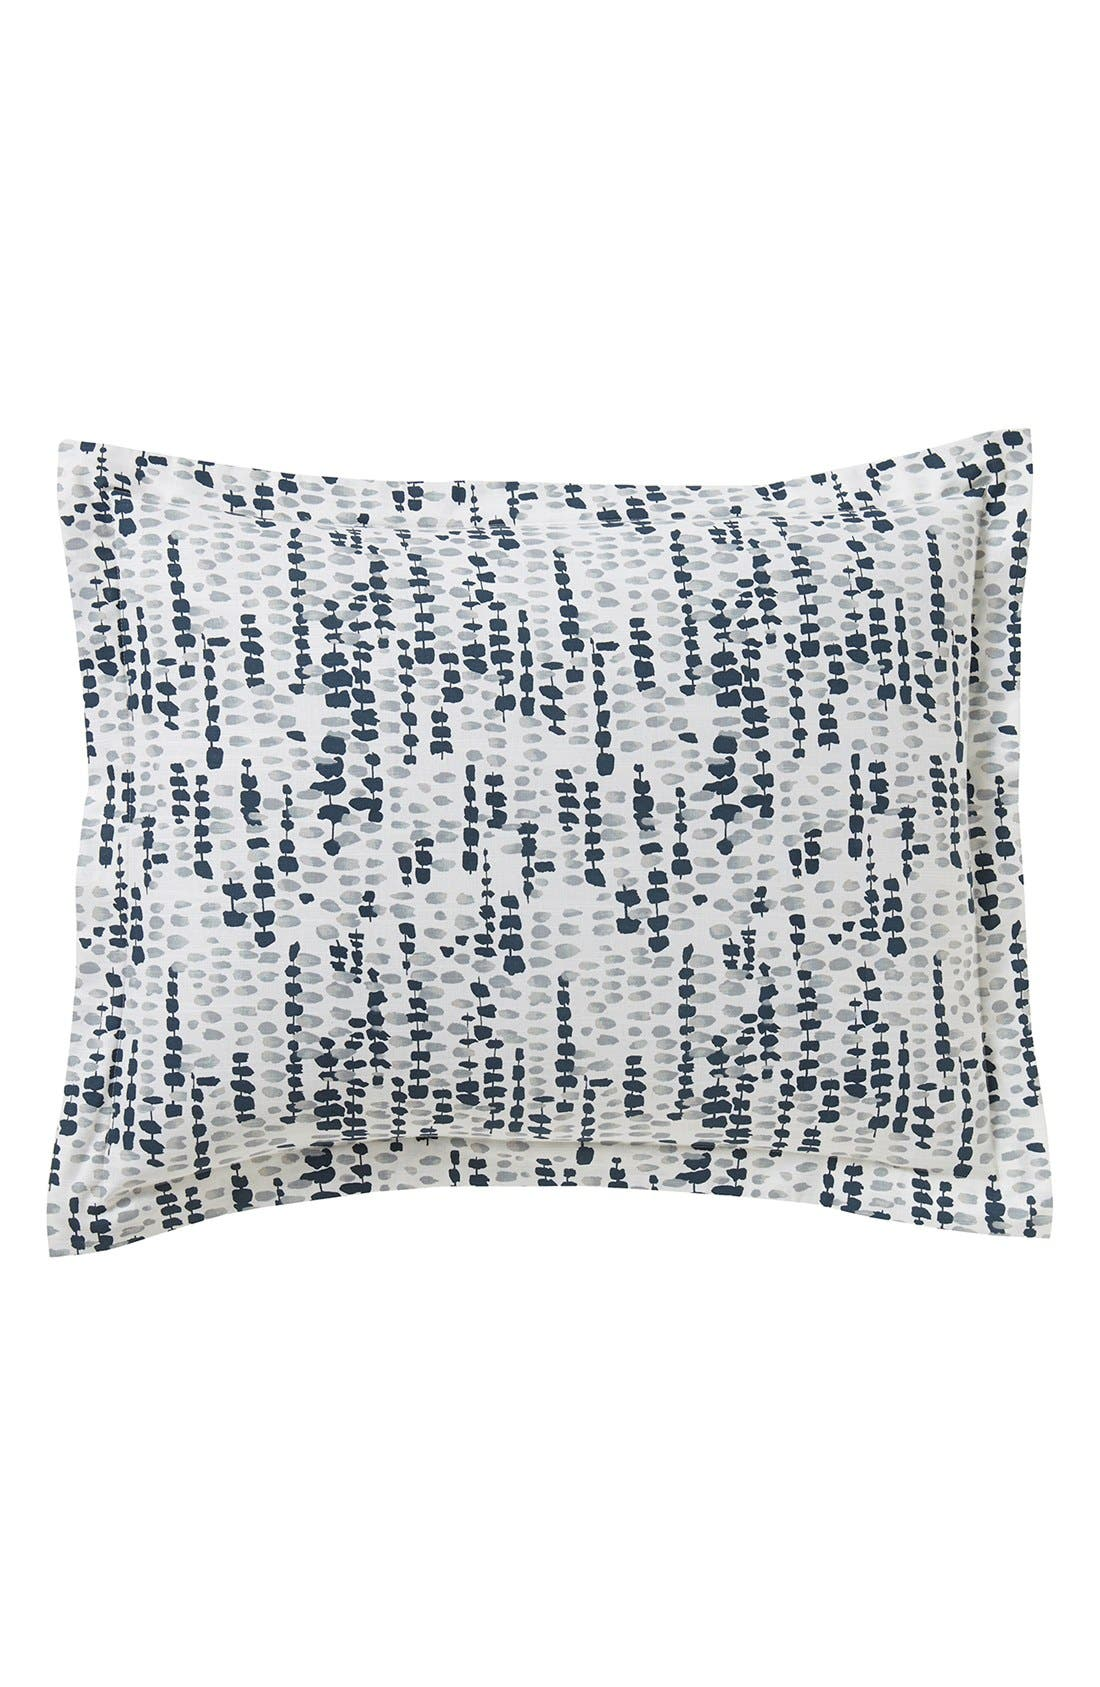 Main Image - DwellStudio 'Lucienne' Shams (Set of 2)